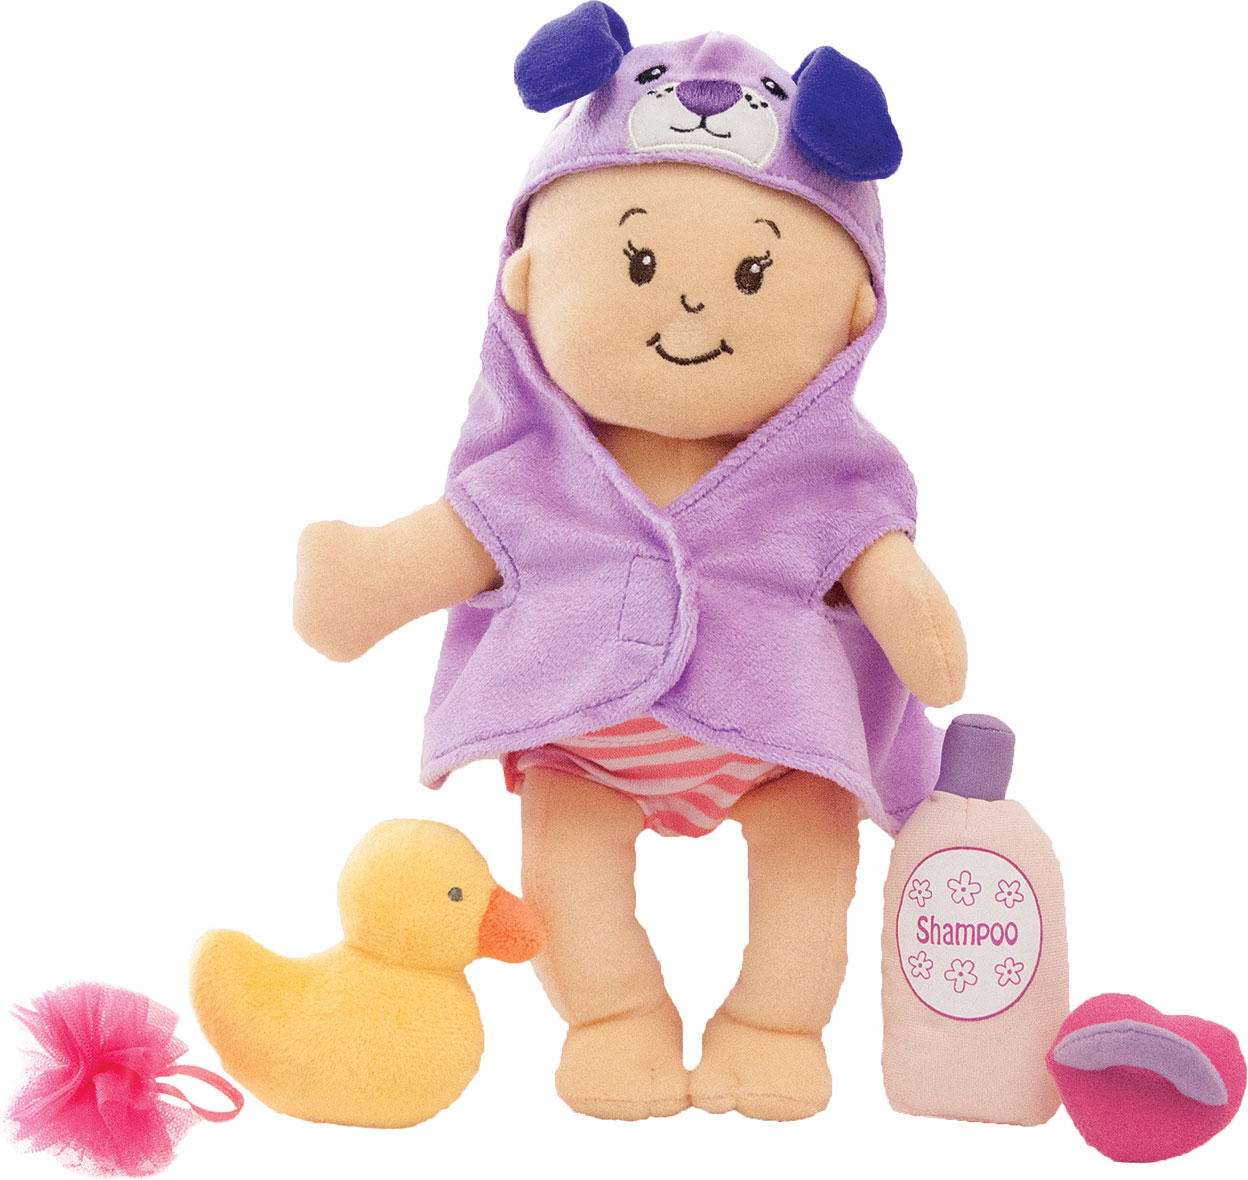 Wee Baby Stella Bathing Set The Village Toy Store